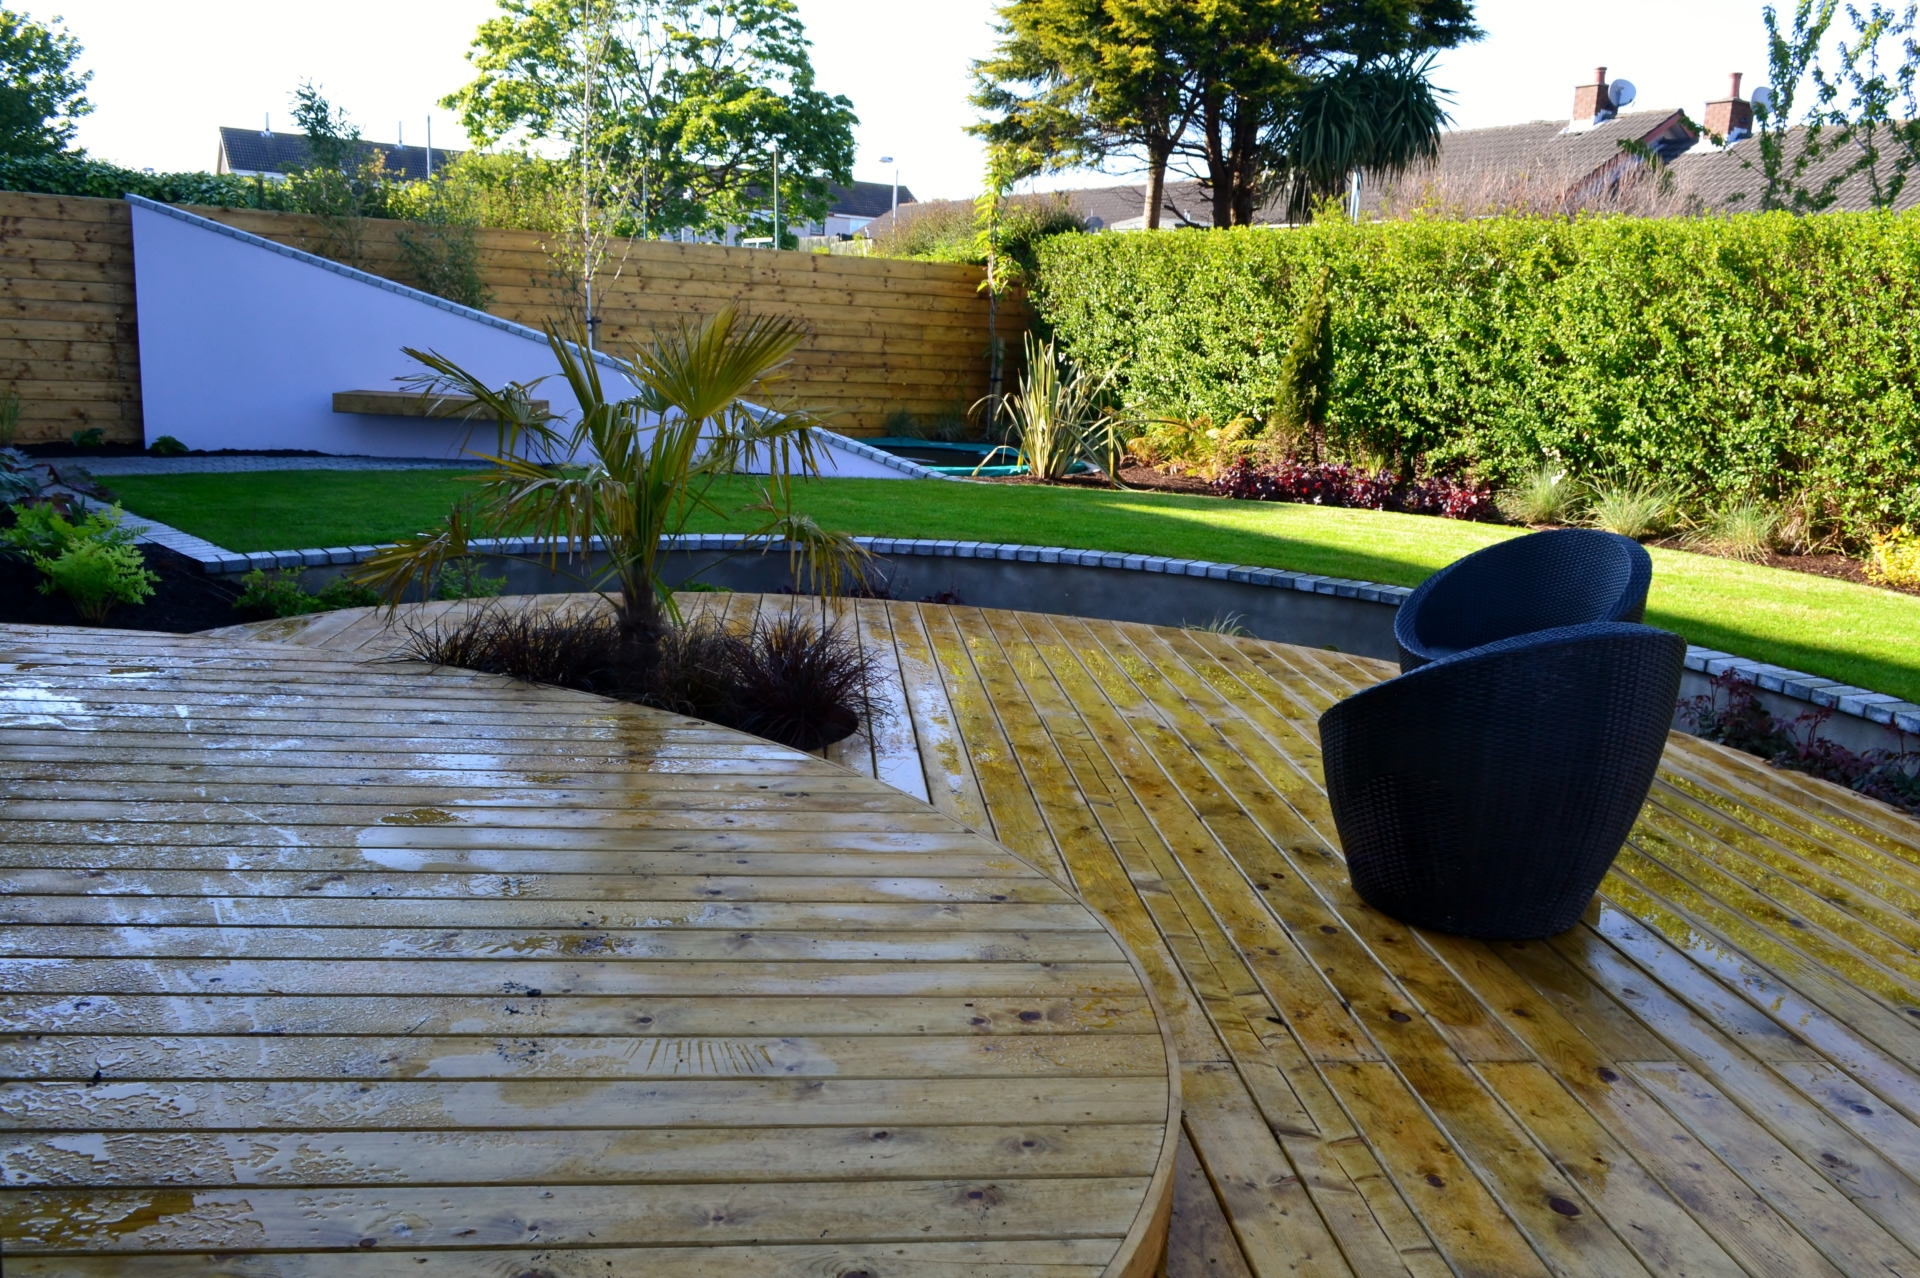 Timber decking, hardwood decking, composite decking